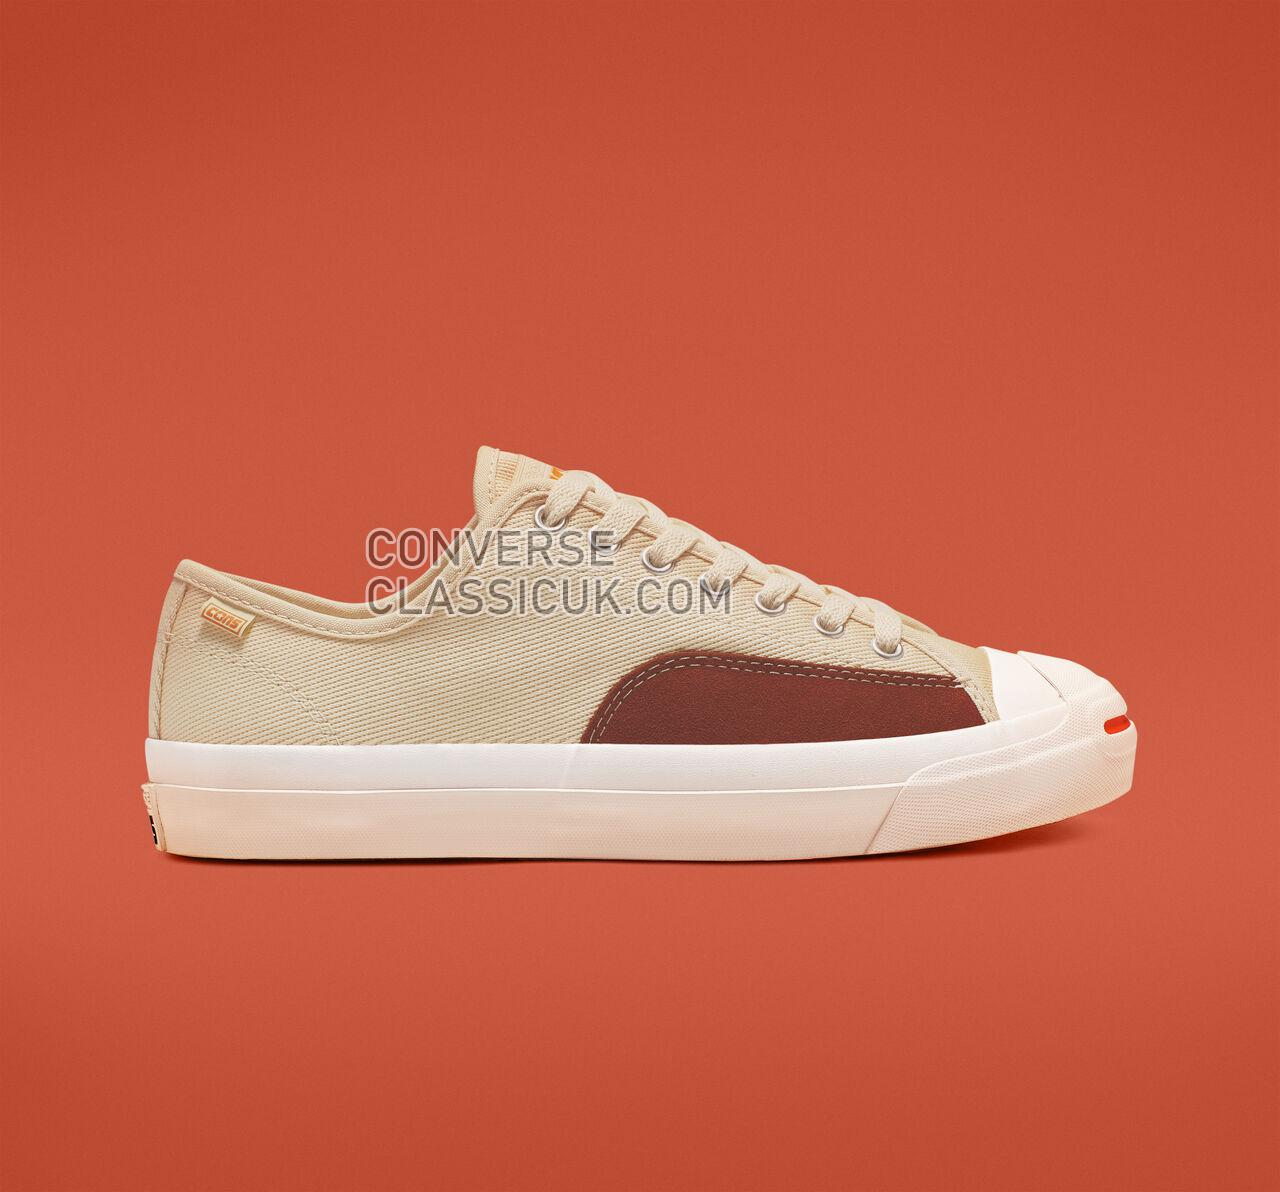 Converse Jack Purcell Pro Low Top Mens Womens Unisex 165293C Natural Ivory/Cinnamon/White Shoes